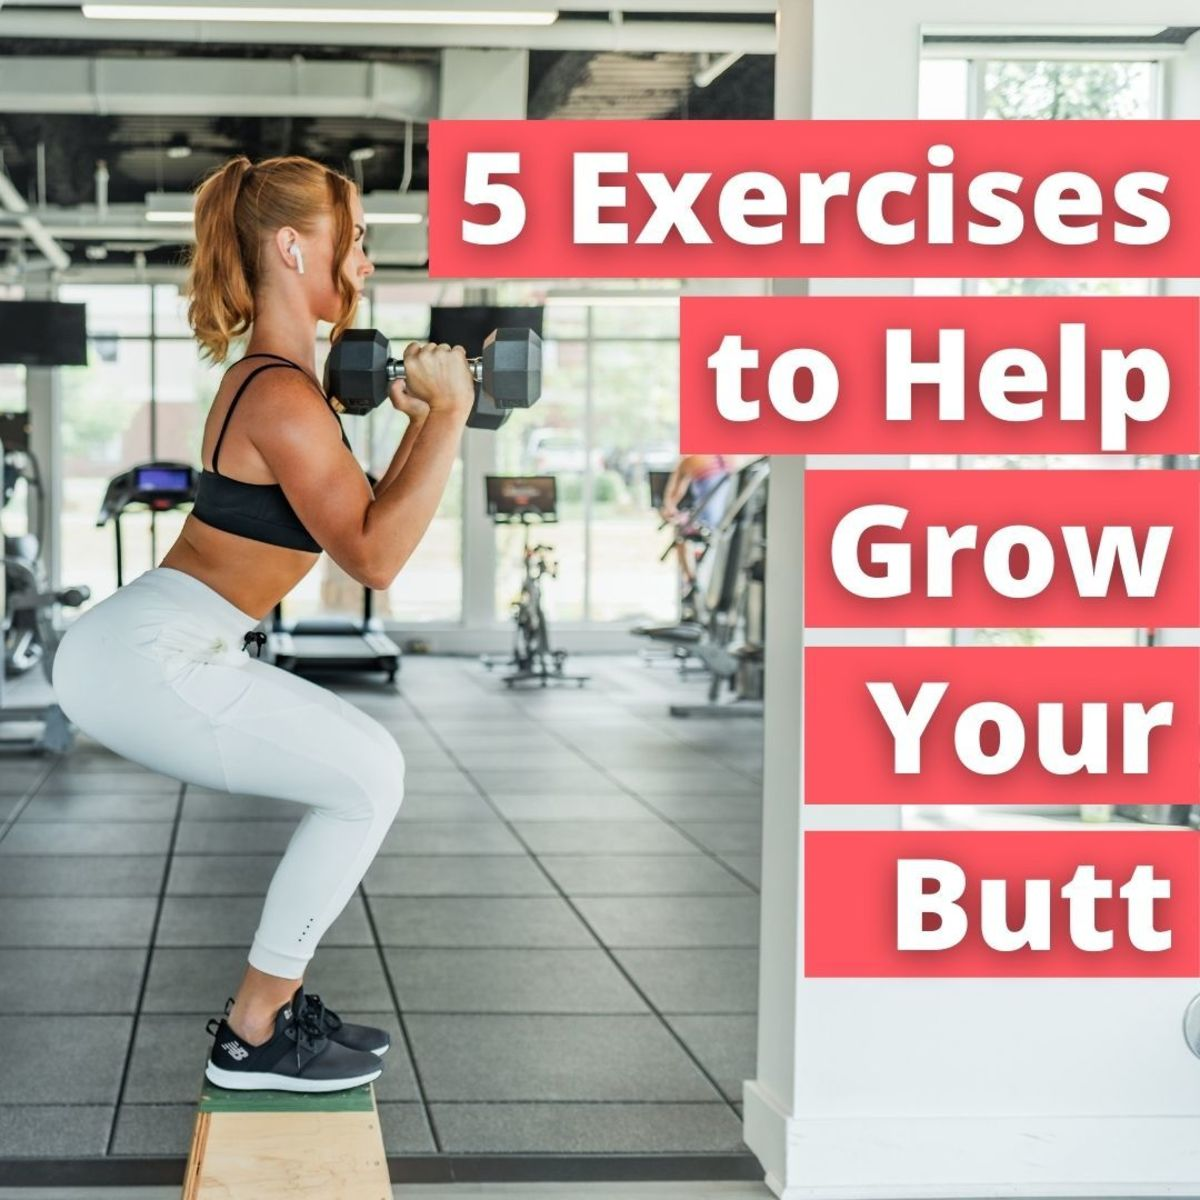 Training for a bigger butt isn't just about taking mirror selfies at the gym and looking good in a pair of jeans. It's about building a strong, well-rounded body capable of climbing mountains and going long distances.